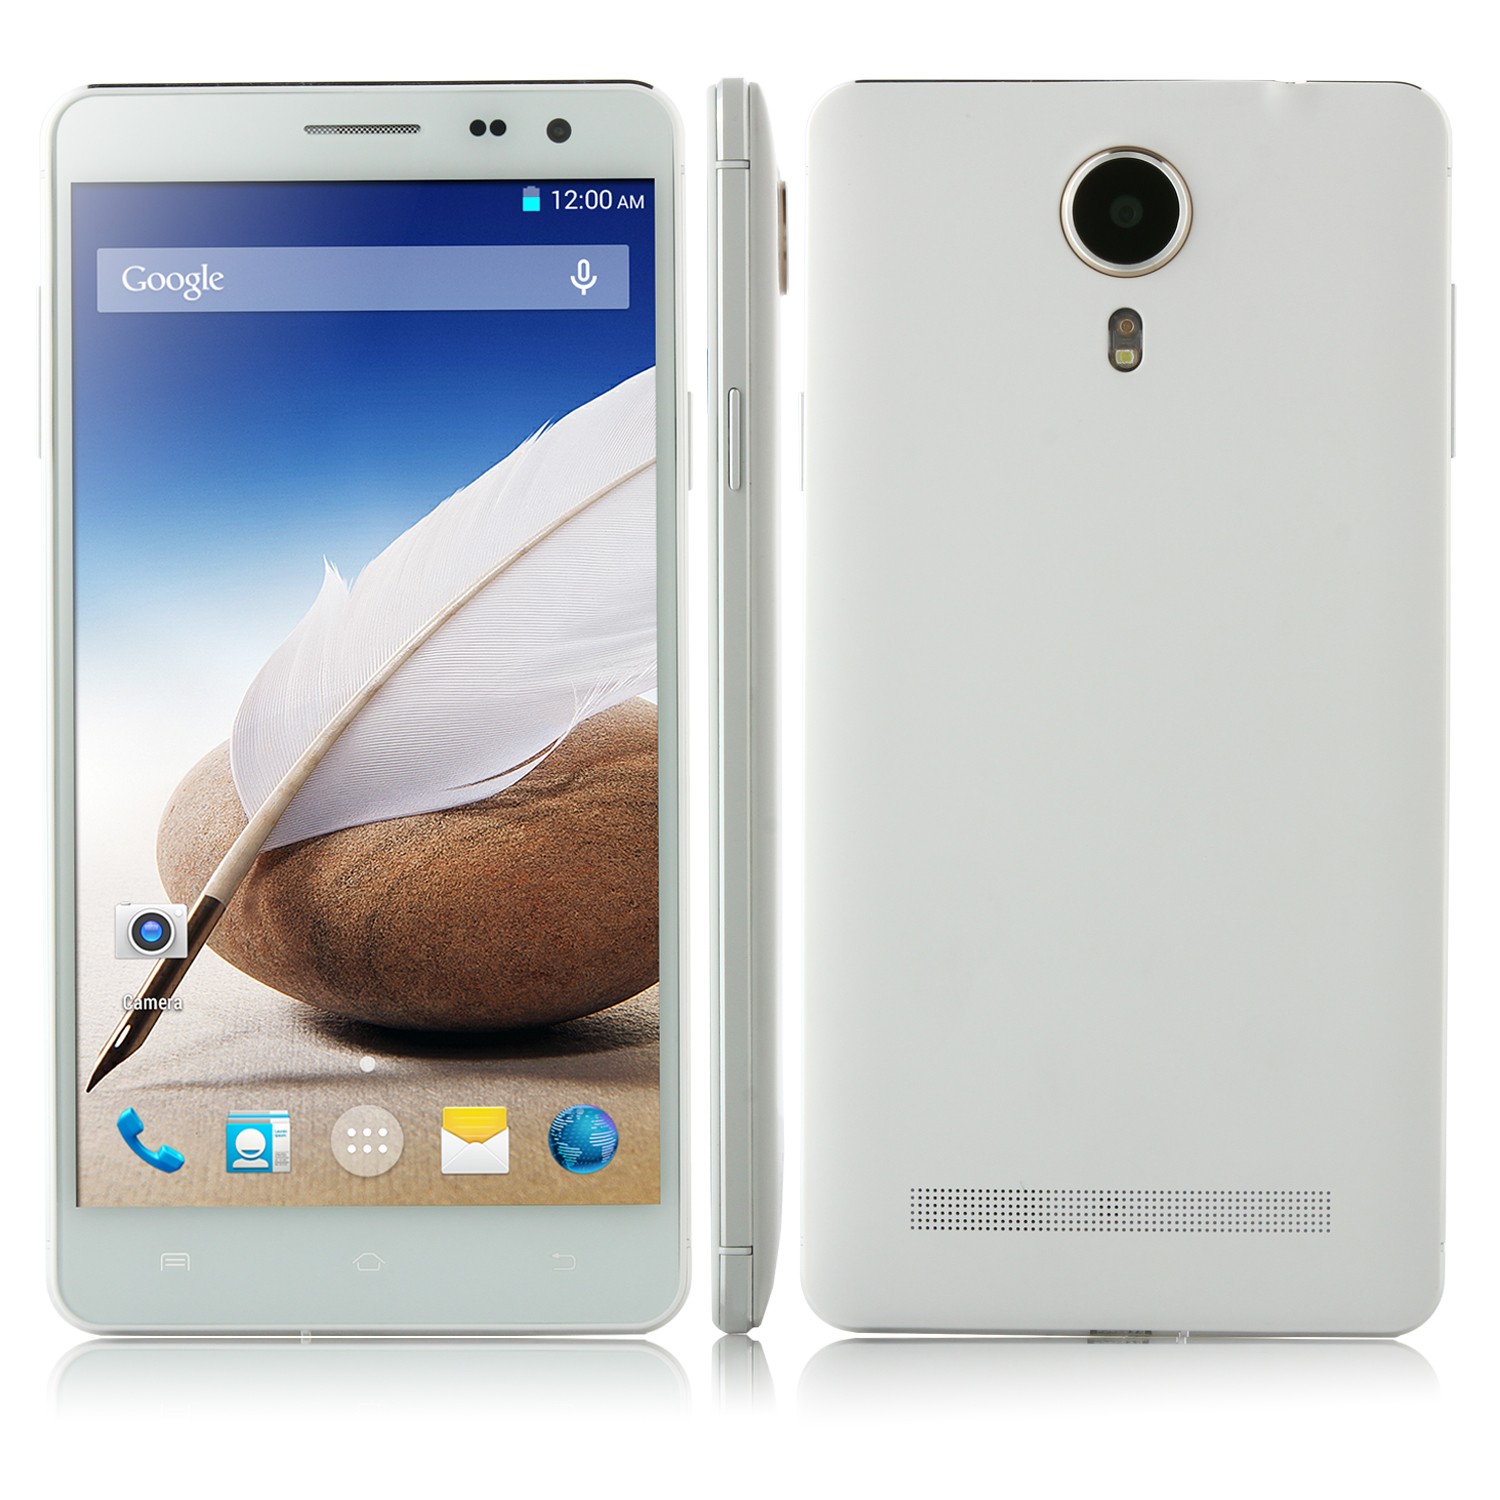 Kingelon V3S Smartphone Android 4.4 MTK6592 Octa Core 5.5 Inch QHD Screen White